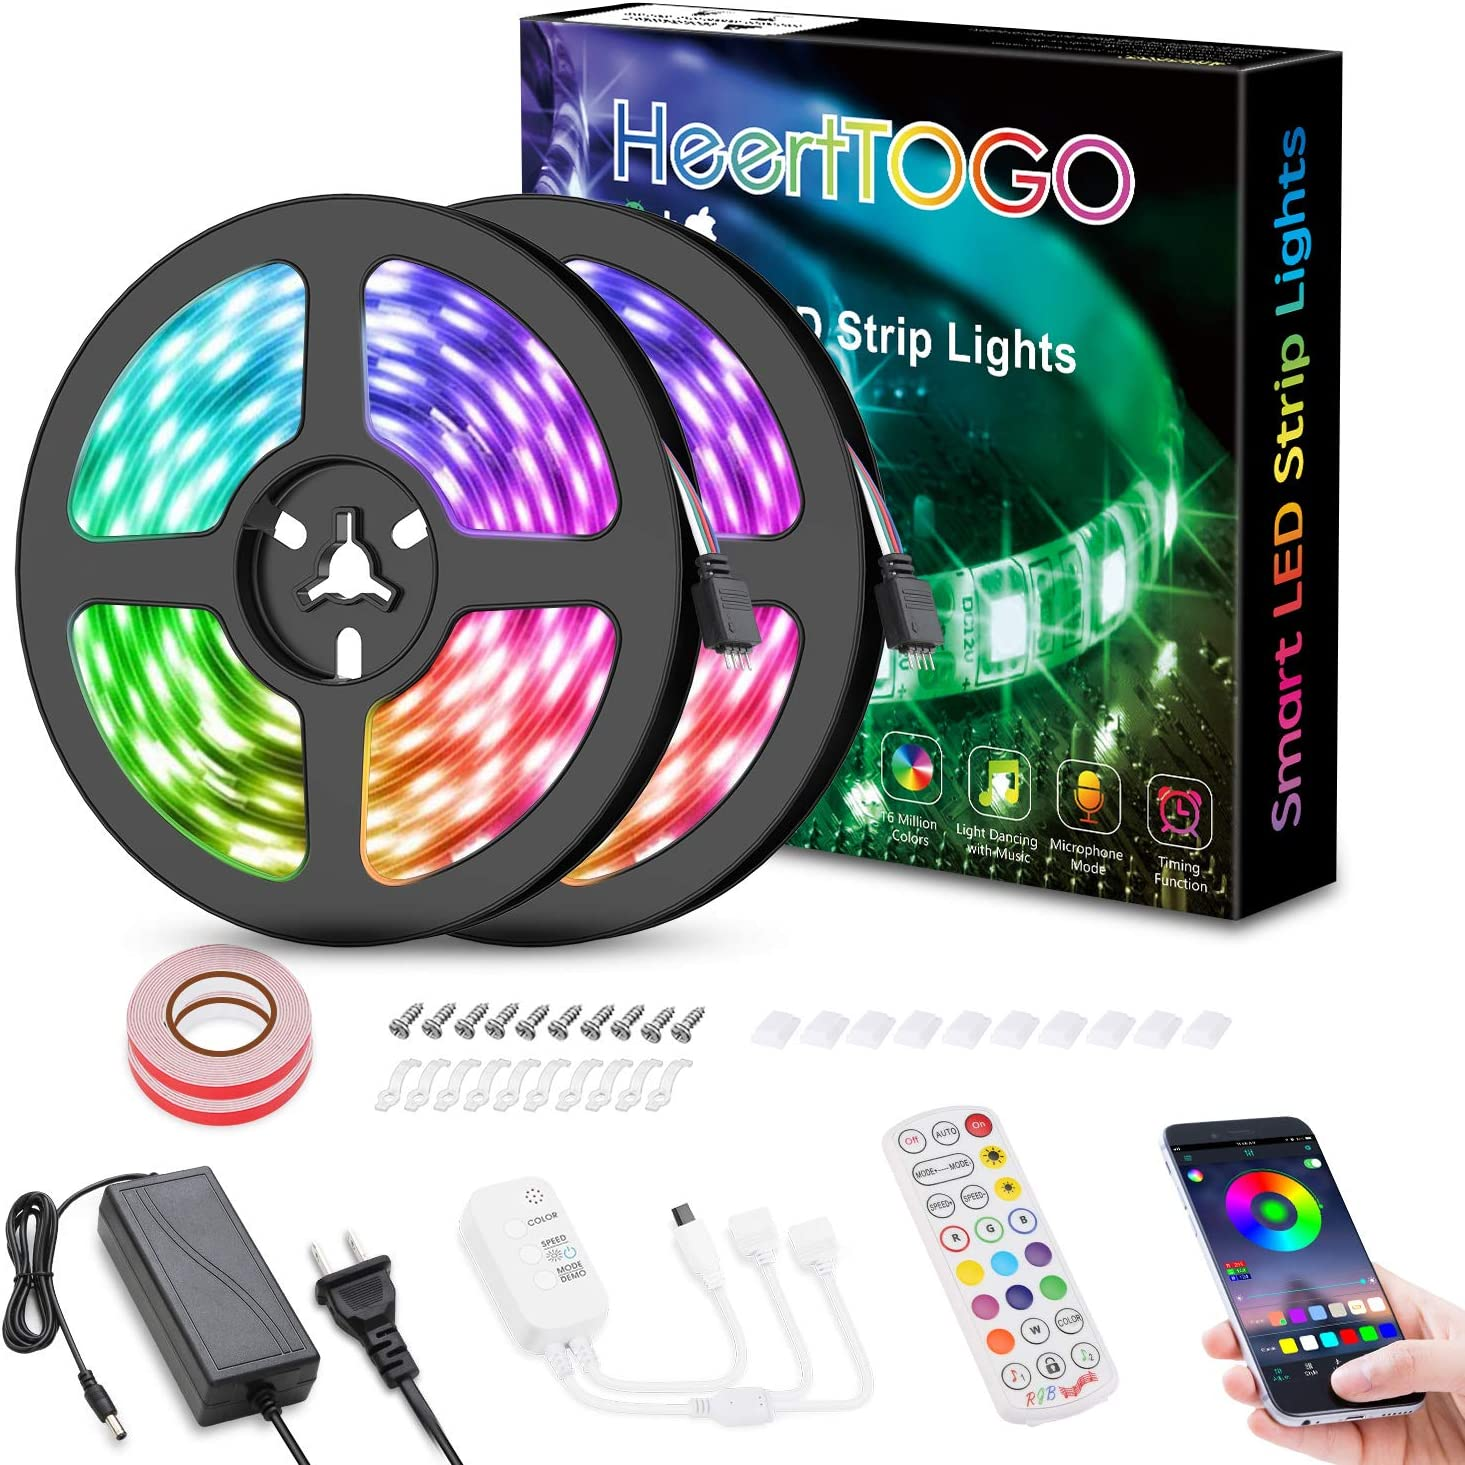 LED Strip Lights for Bedroom,HeertTOGO 32.8ft Bluetooth APP Control Music Sync Color Changing LED Lights 300 LEDs 5050 RGB Bluetooth LED Strip Lights for Bedroom Home TV Decorations